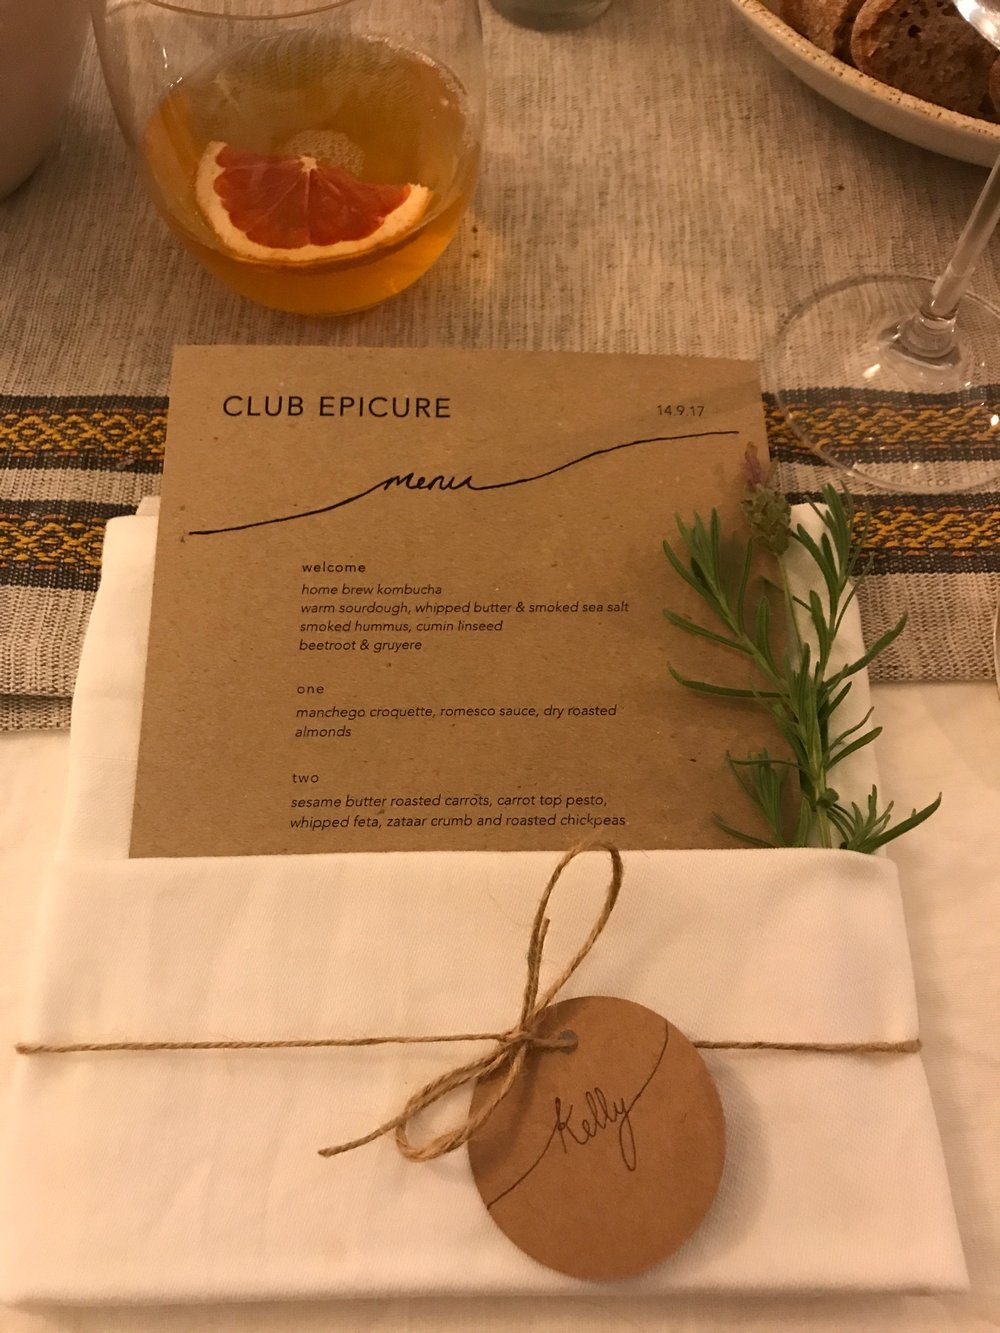 Attention to detail at ClubEpicure extended to handwritten place settings